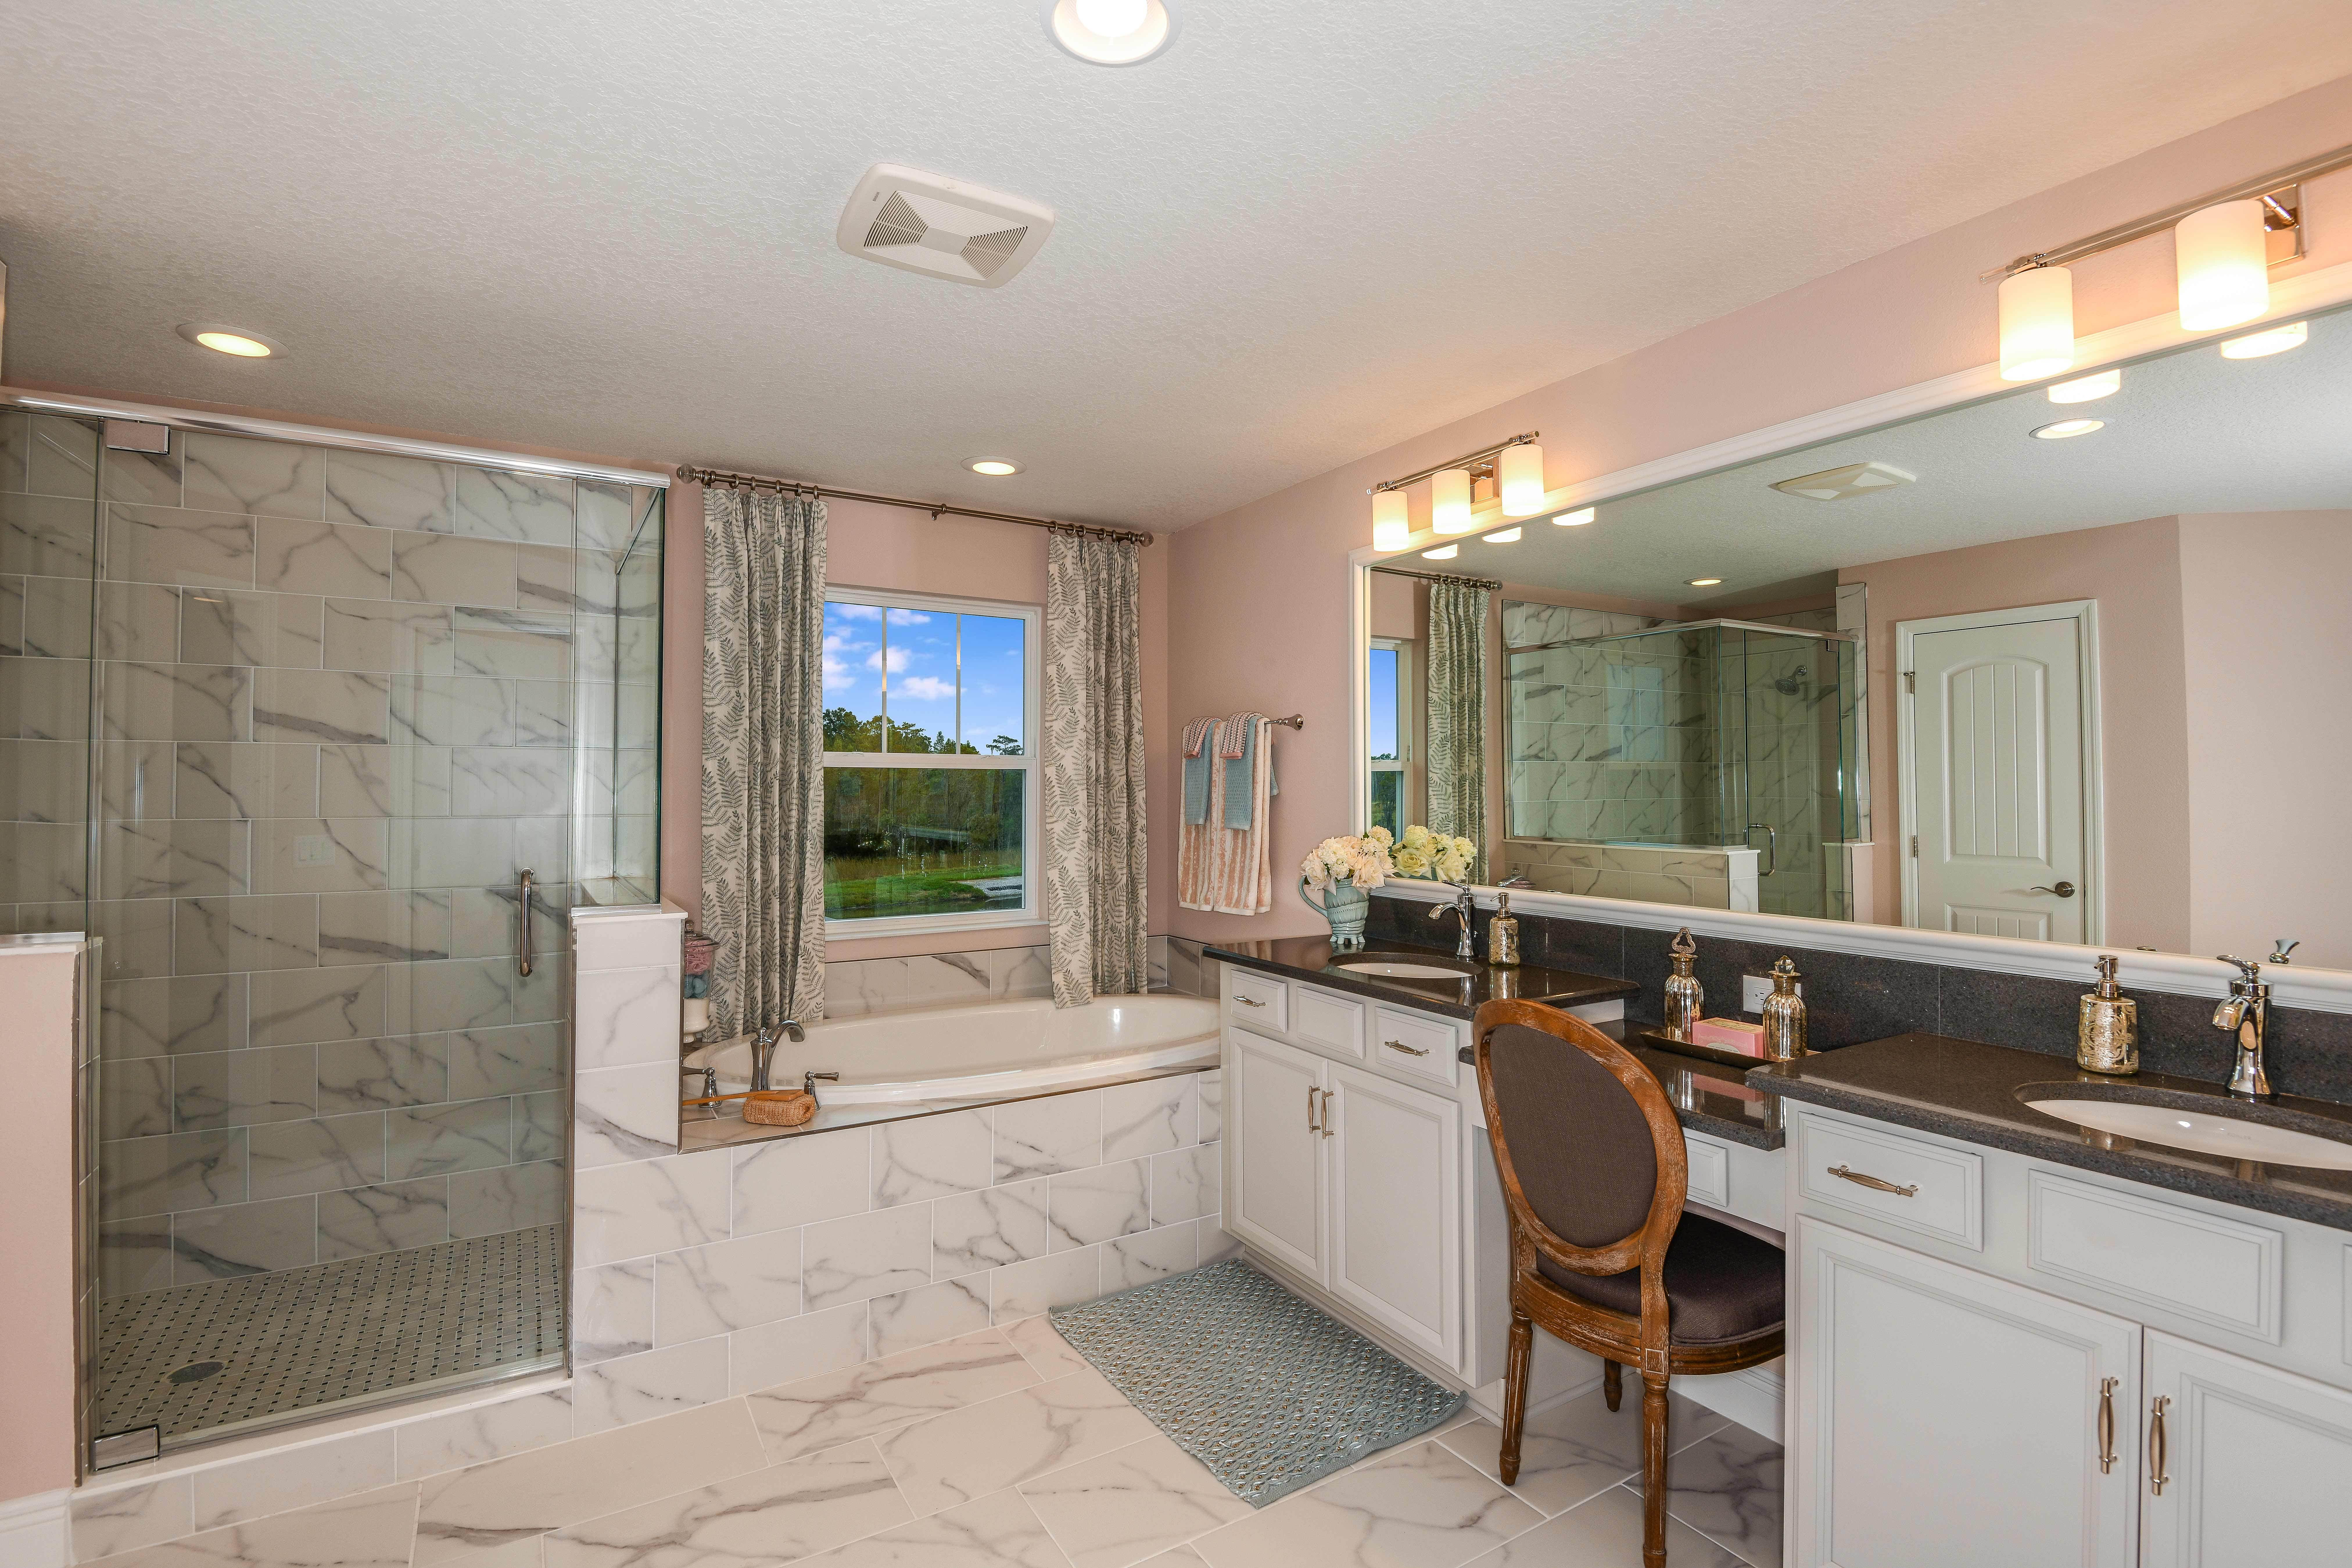 Bathroom featured in the Avocet II By Homes by WestBay in Tampa-St. Petersburg, FL